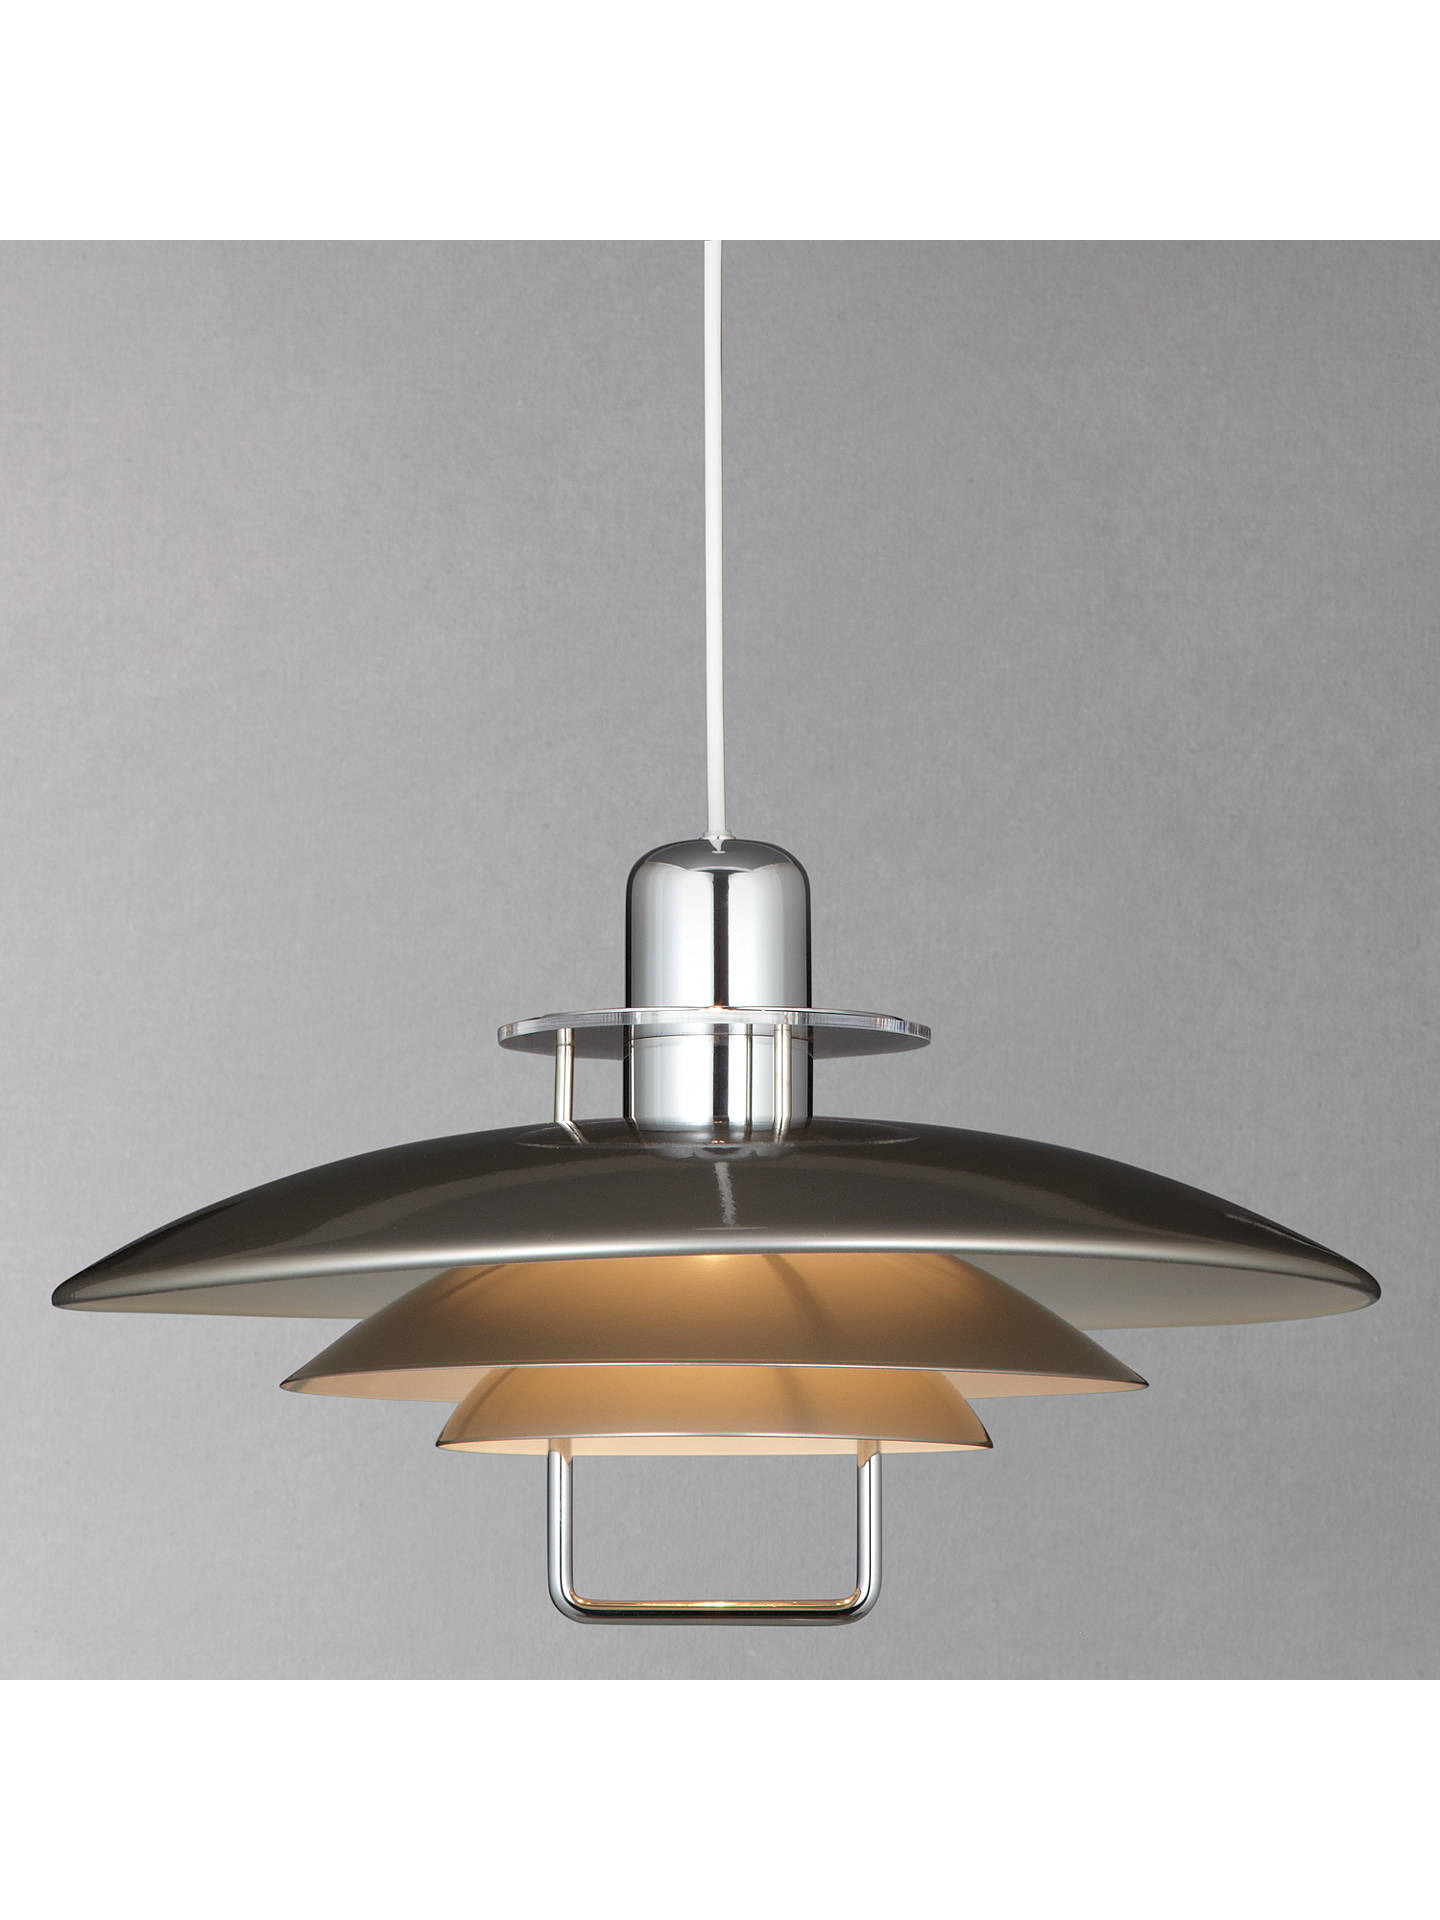 Buybelid felix rise and fall ceiling light satin nickel online at johnlewis com